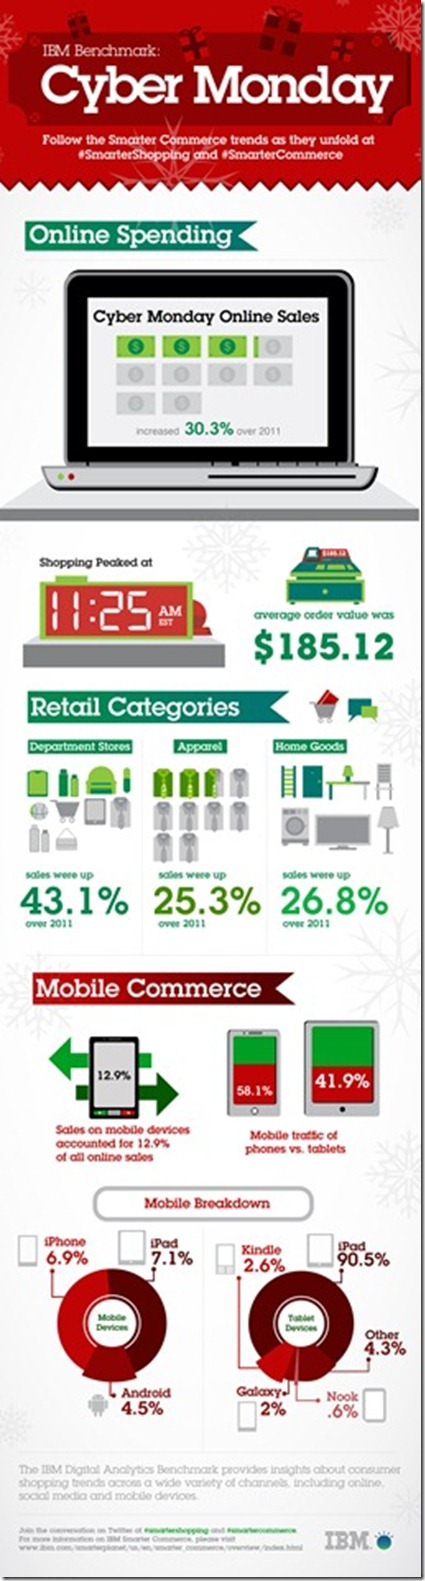 IBM Holiday Benchmark Cyber Monday Infographic_11_27